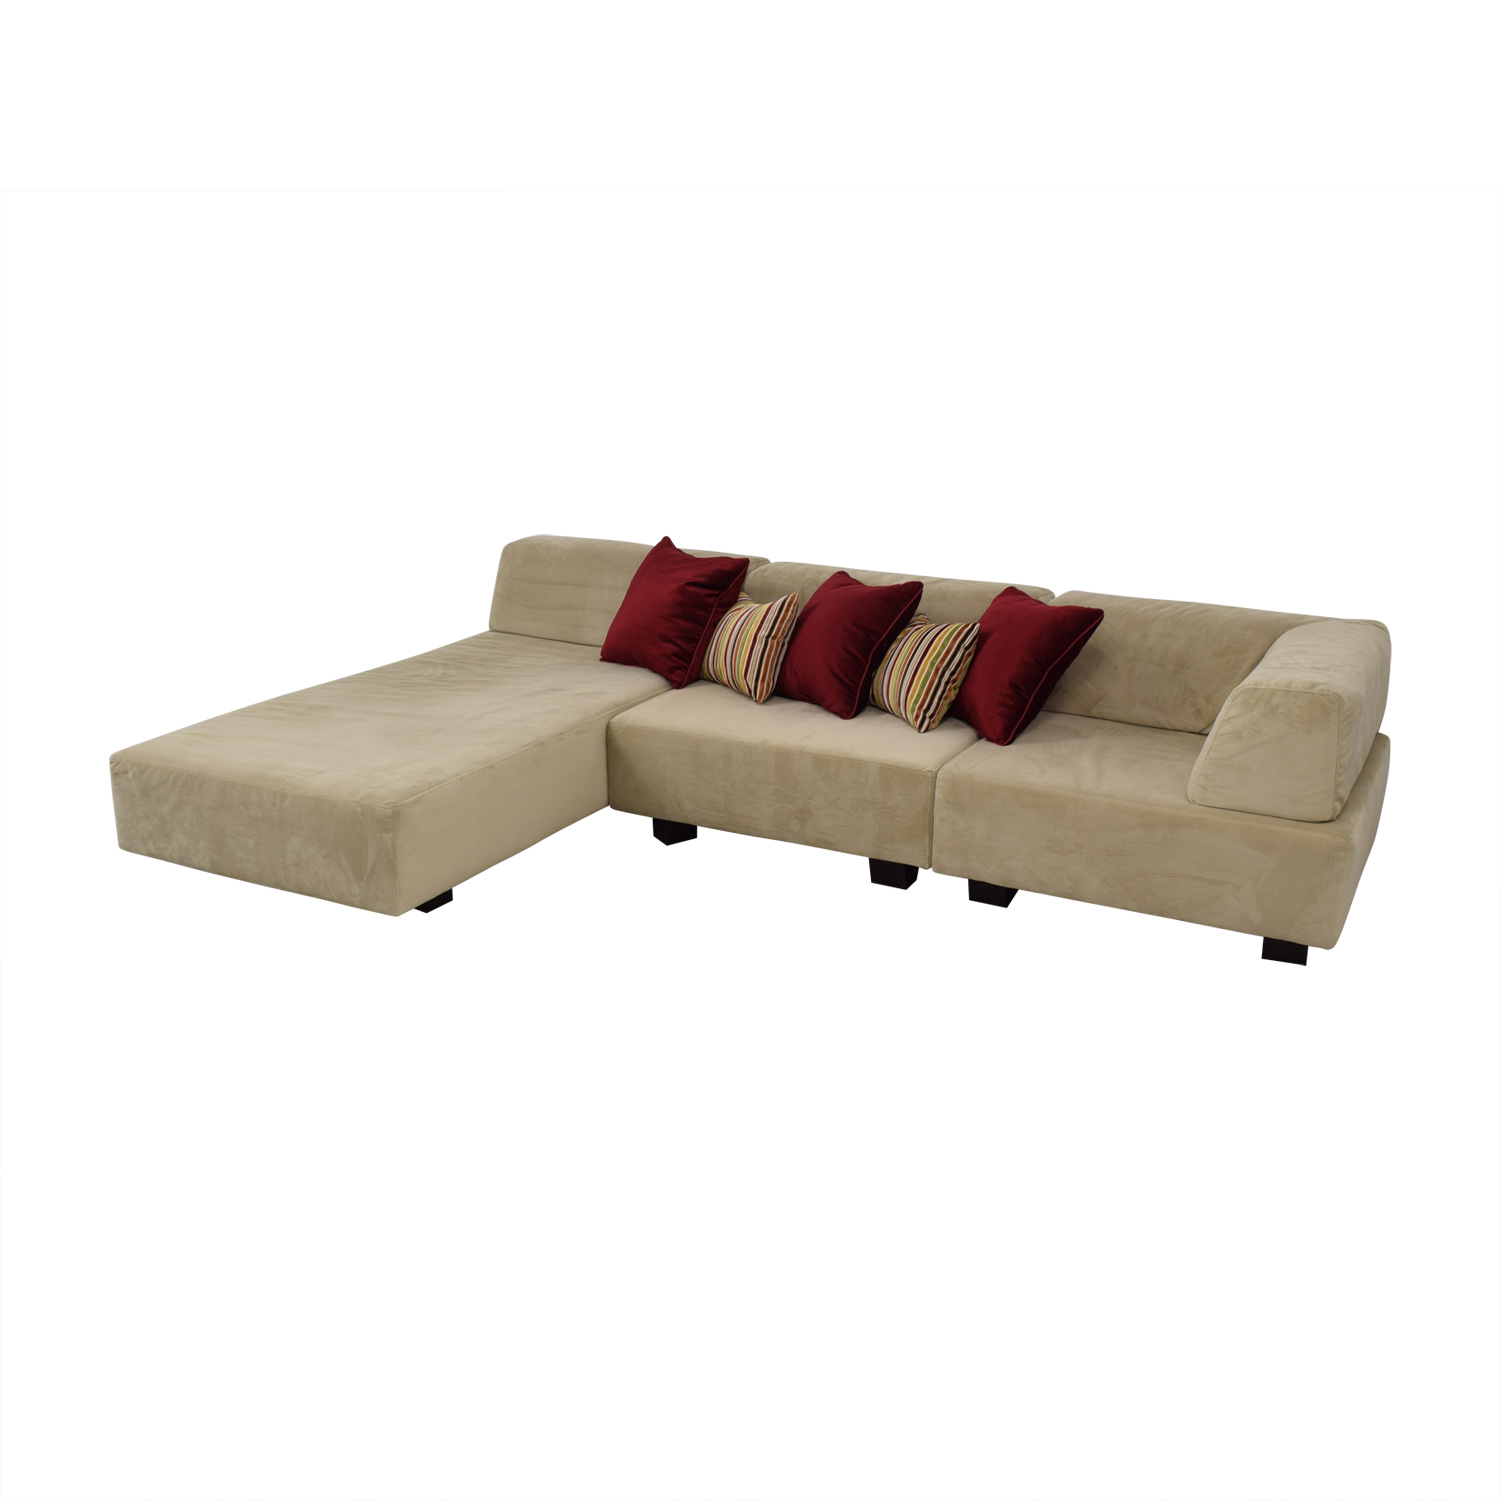 West Elm West Elm Tillary Beige Chaise Sectional discount